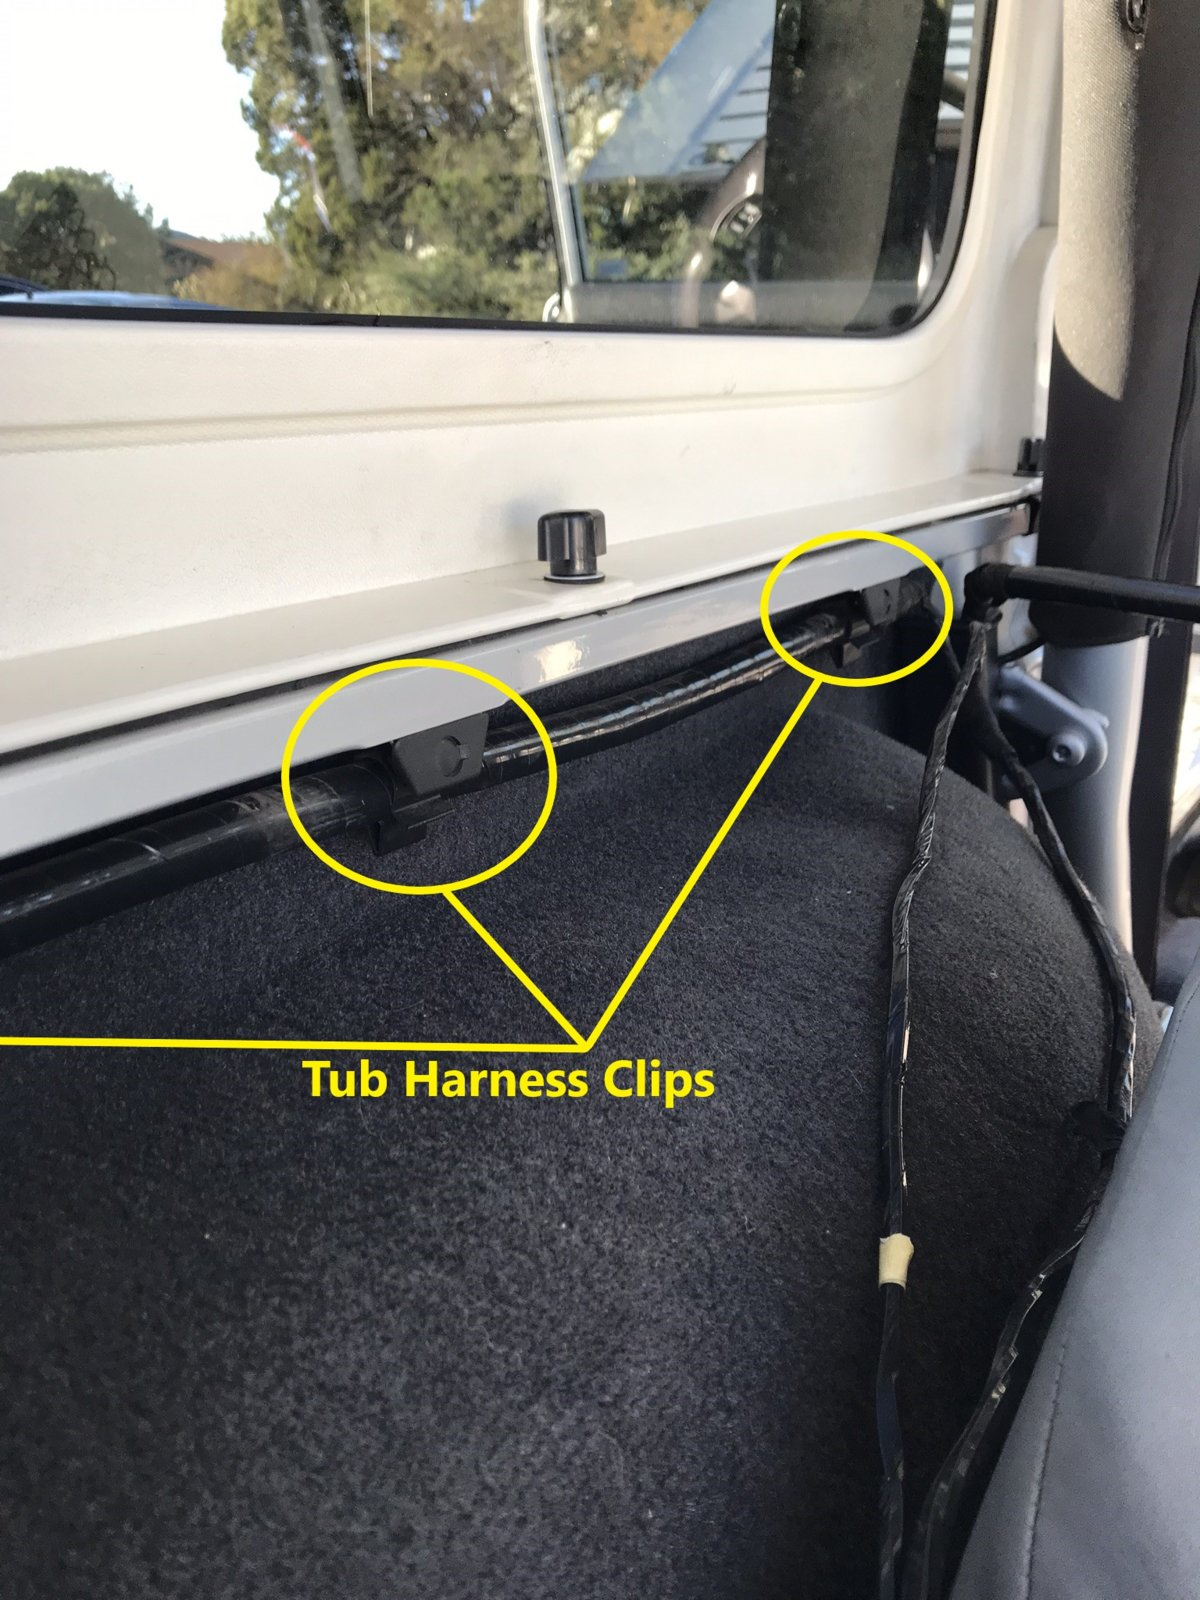 How to Factory Wire your TJ for a Hardtop Part 2 (Rear Tub ... Jeep Yj Hardtop Wiring Harness on jeep yj trailer wiring, jeep yj radio wiring, wrangler hardtop wiring, jeep yj air conditioning wiring,